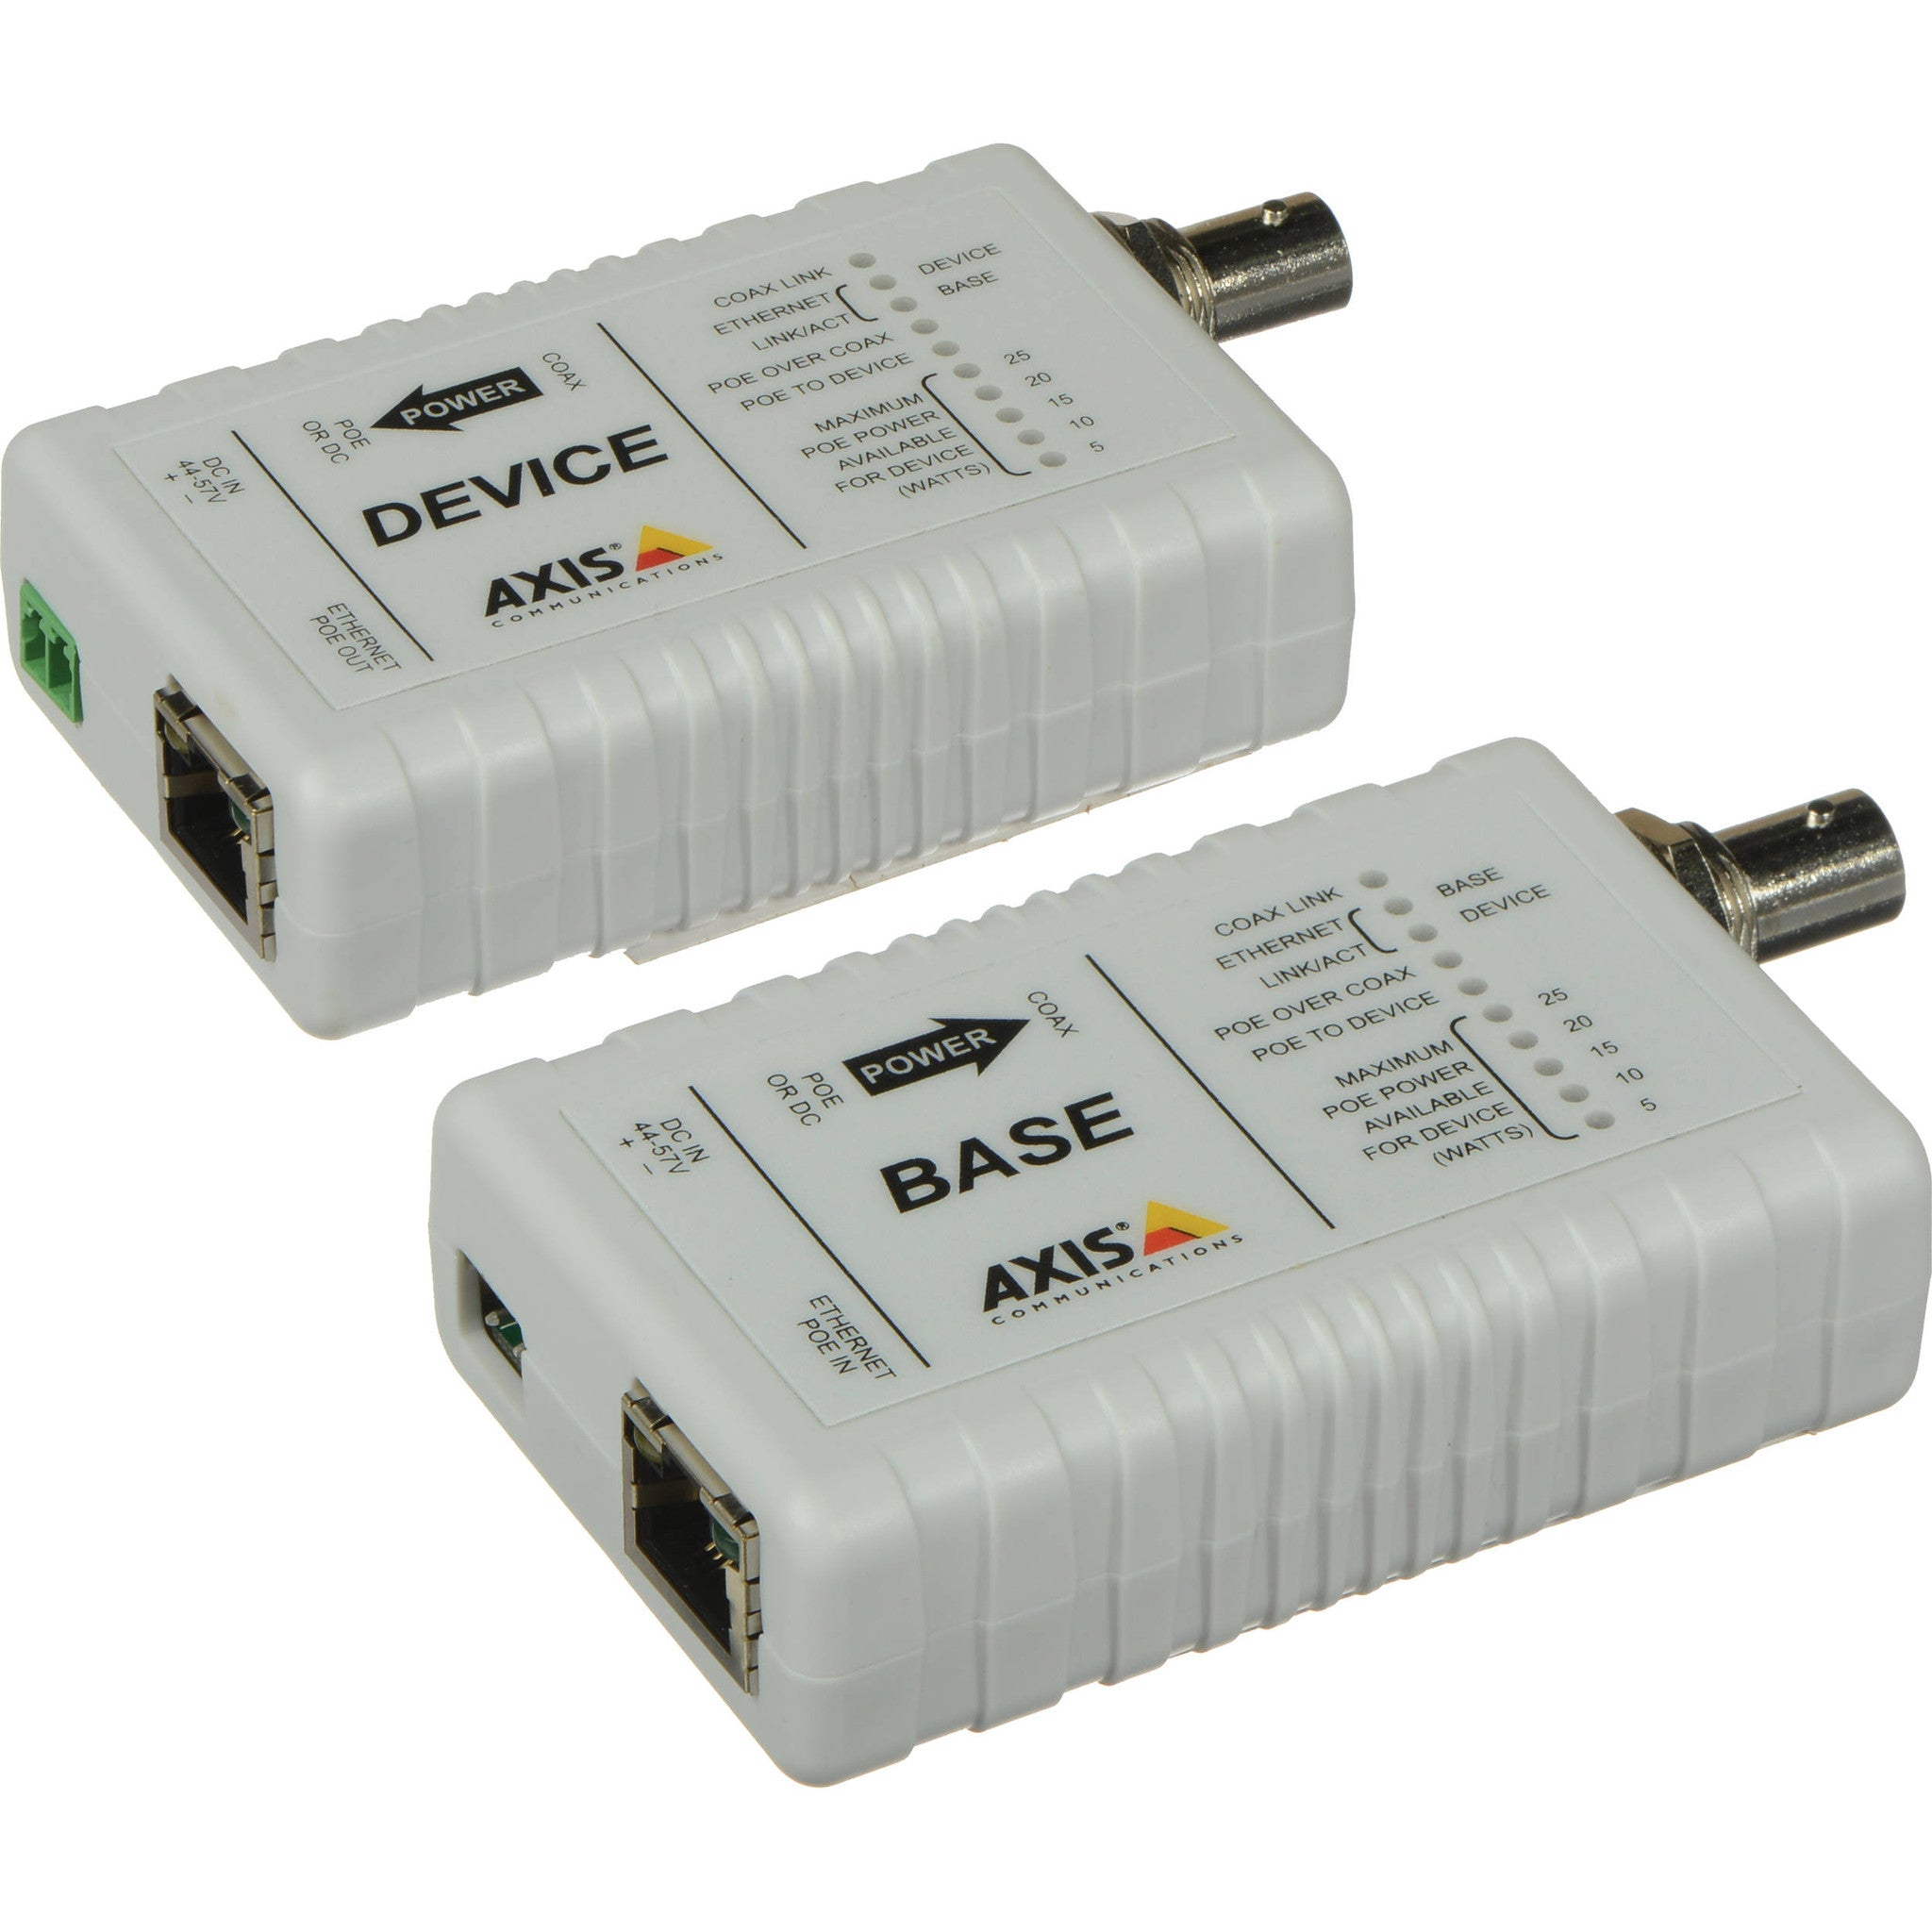 Ethernet PoE-over-Coax Adapter Kit